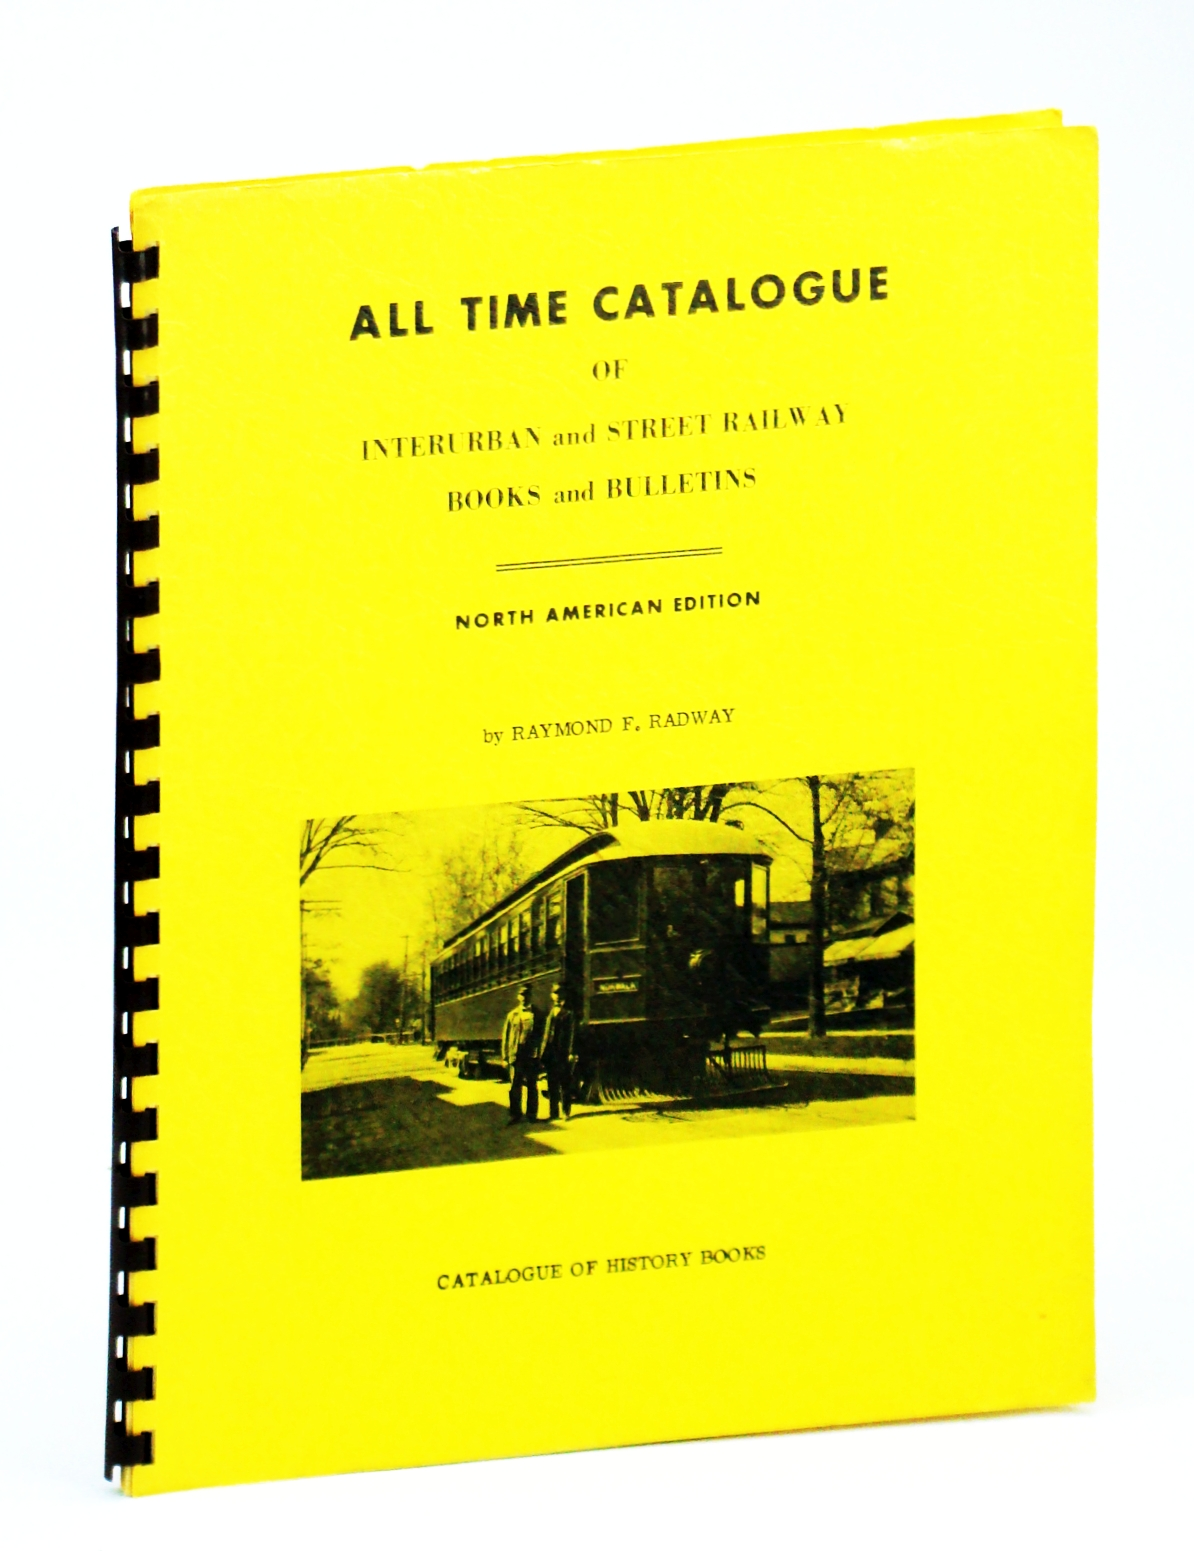 Image for All time catalogue of interurban and street railway books and bulletins;: North American edition